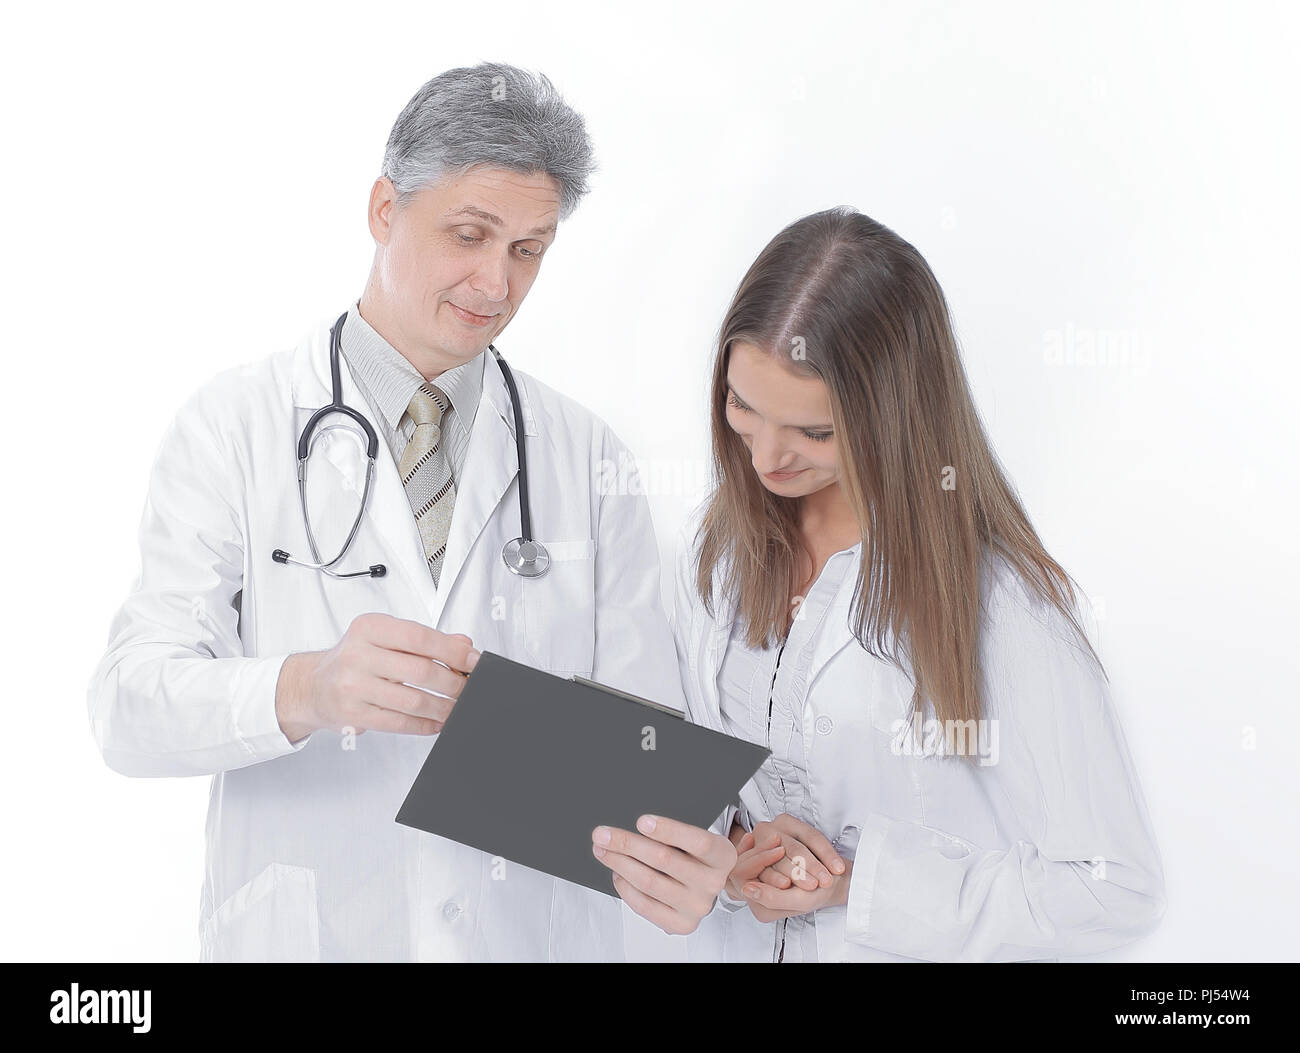 Woman doctor reviewing xrays with colleague.isolated on a white - Stock Image